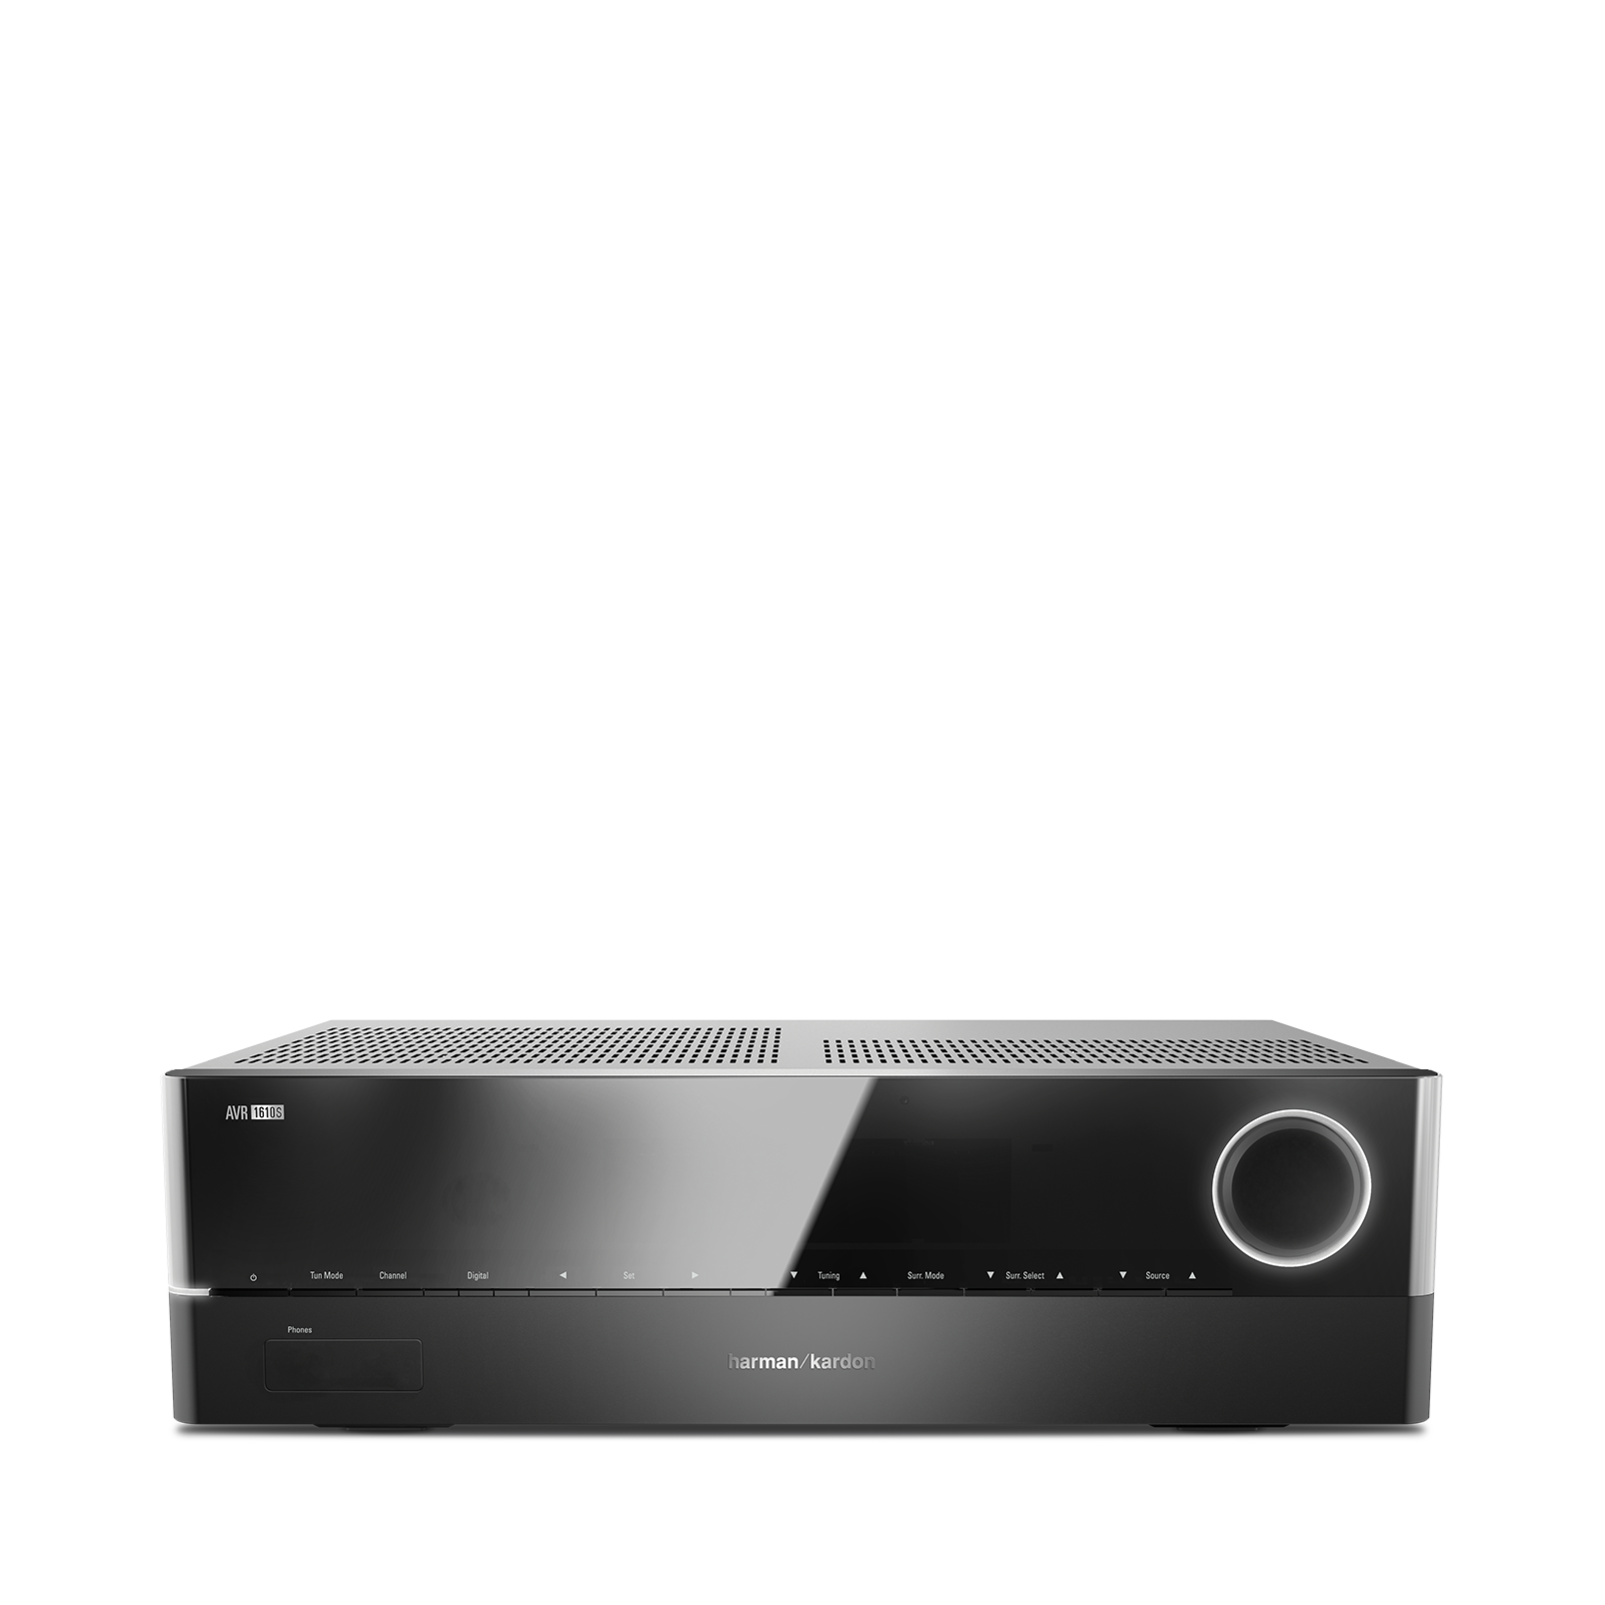 AVR 1610S - Black - 425-watt, 5.1-channel, networked A/V receiver with HARMAN TrueStream, Bluetooth technology and five HDMI® 2.0 inputs including an MHL port - Front